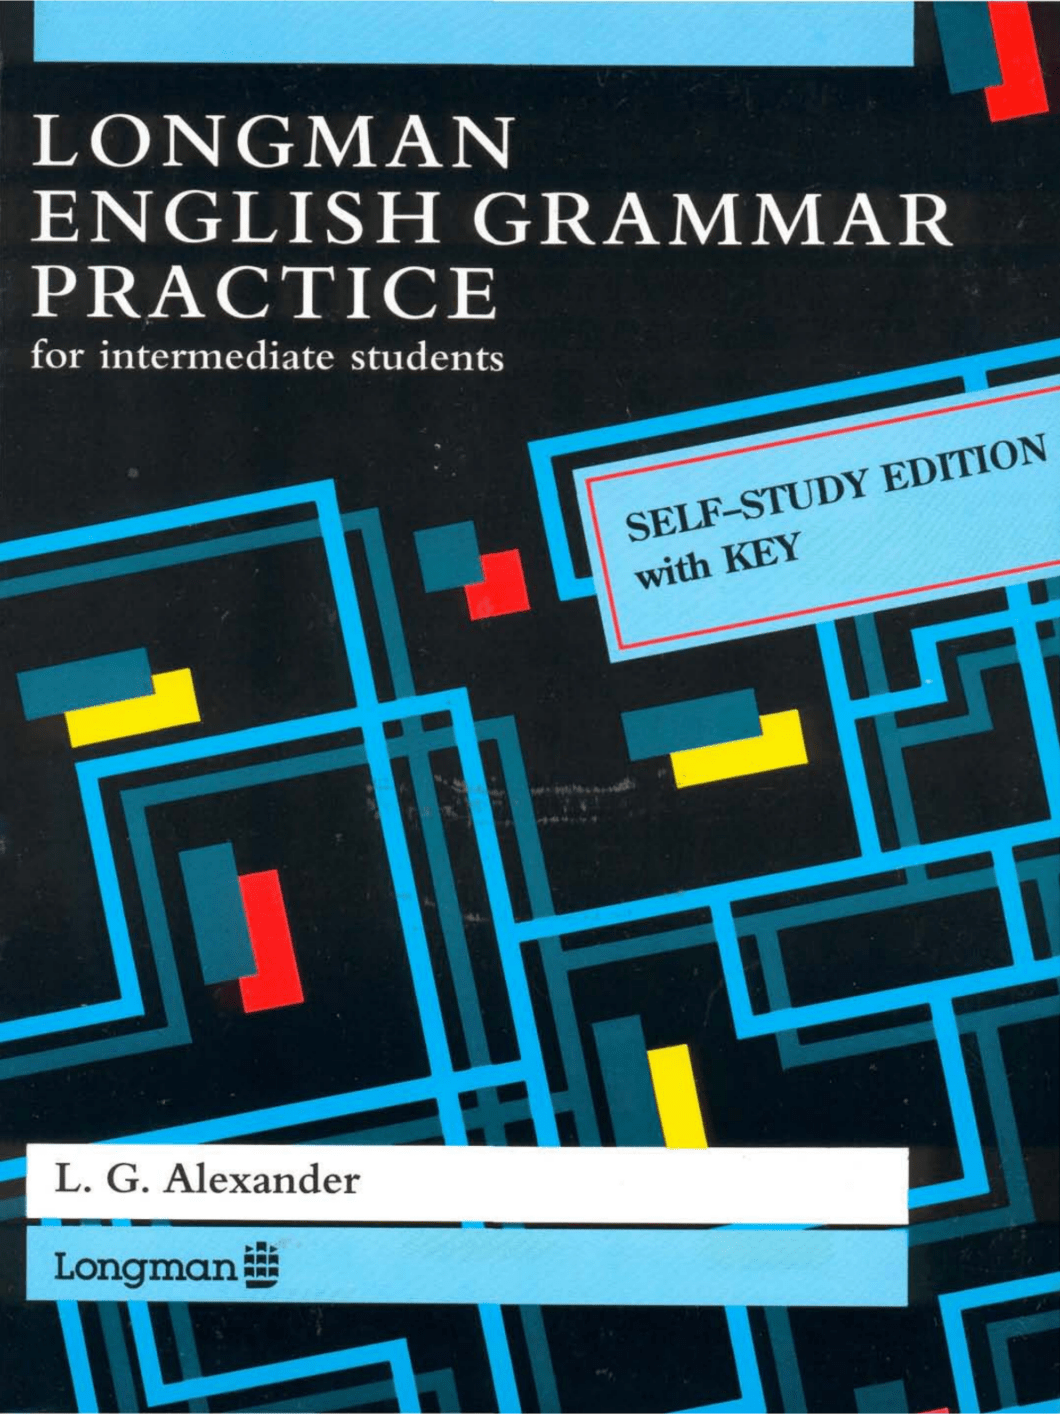 Longman English Grammar Practice With Key (Grammar Reference) by L. G. Alexander